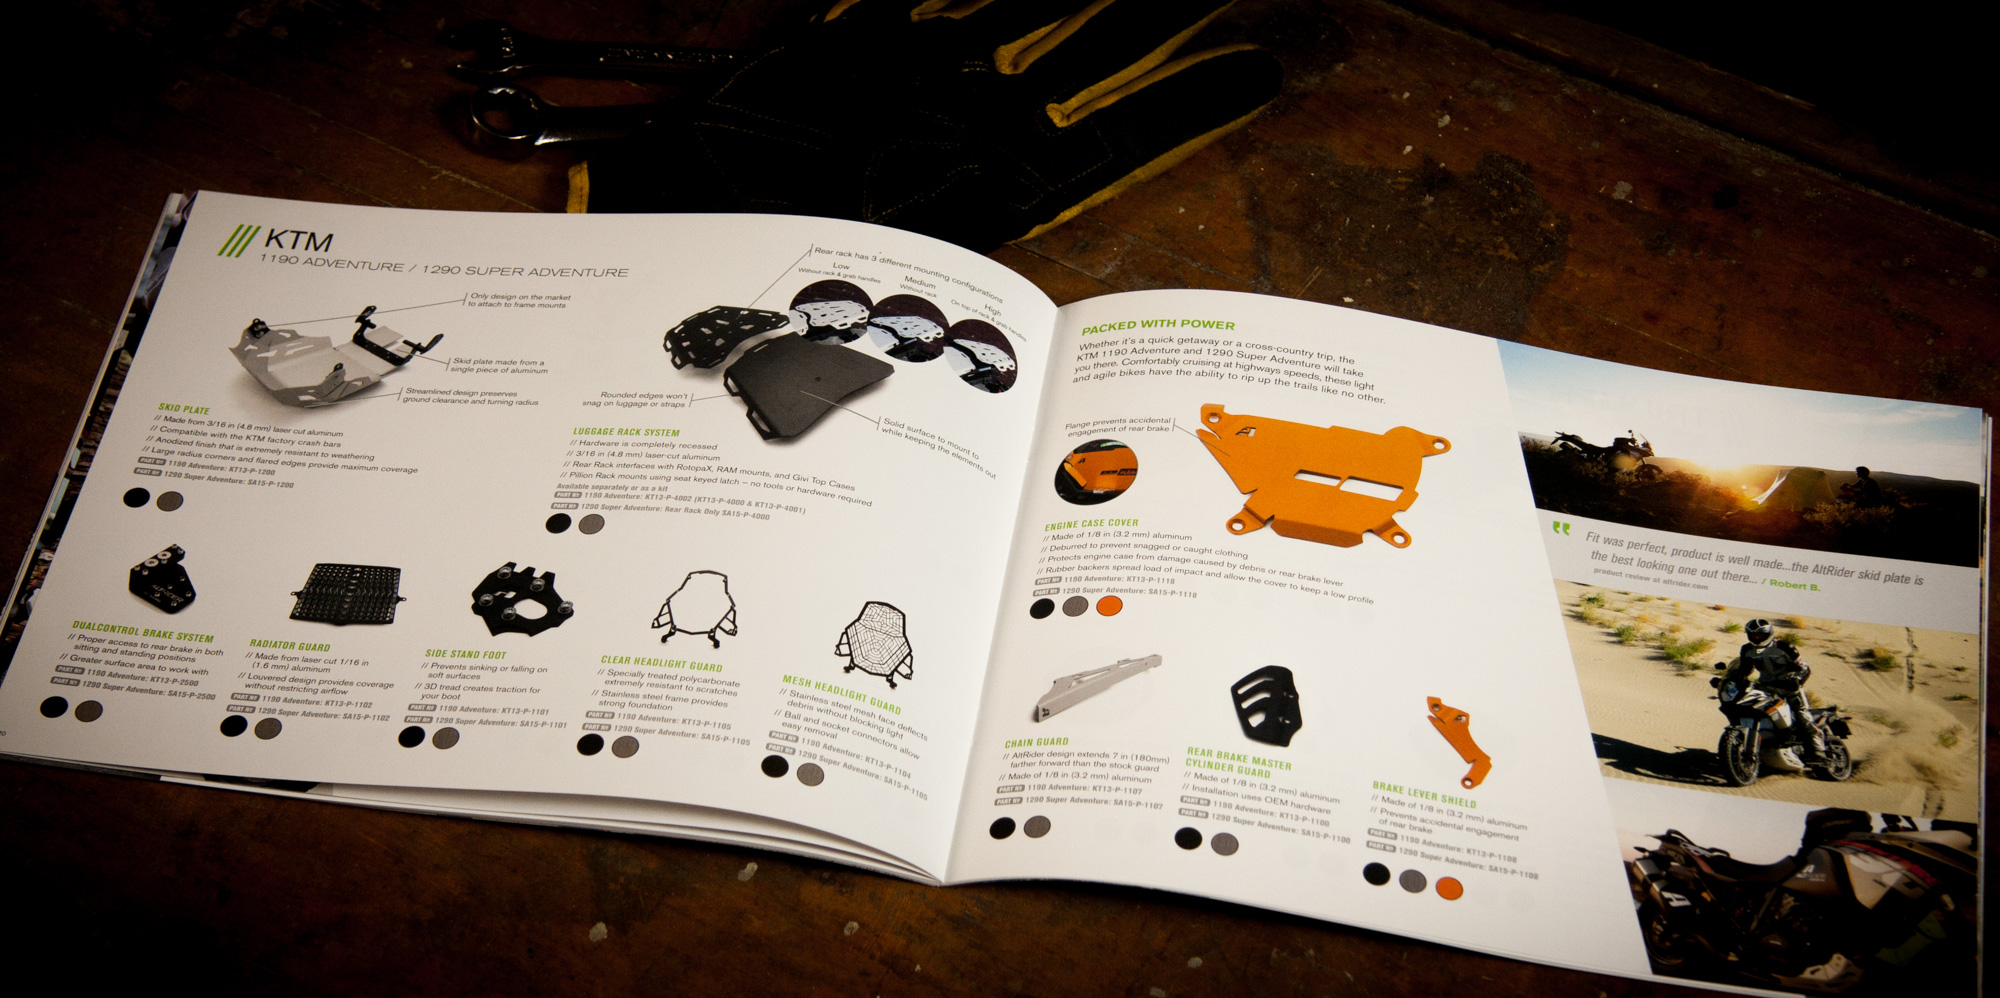 Spread containing products for the KTM 1190 Adventure / 1290 Super Adventure in the AltRider catalog.